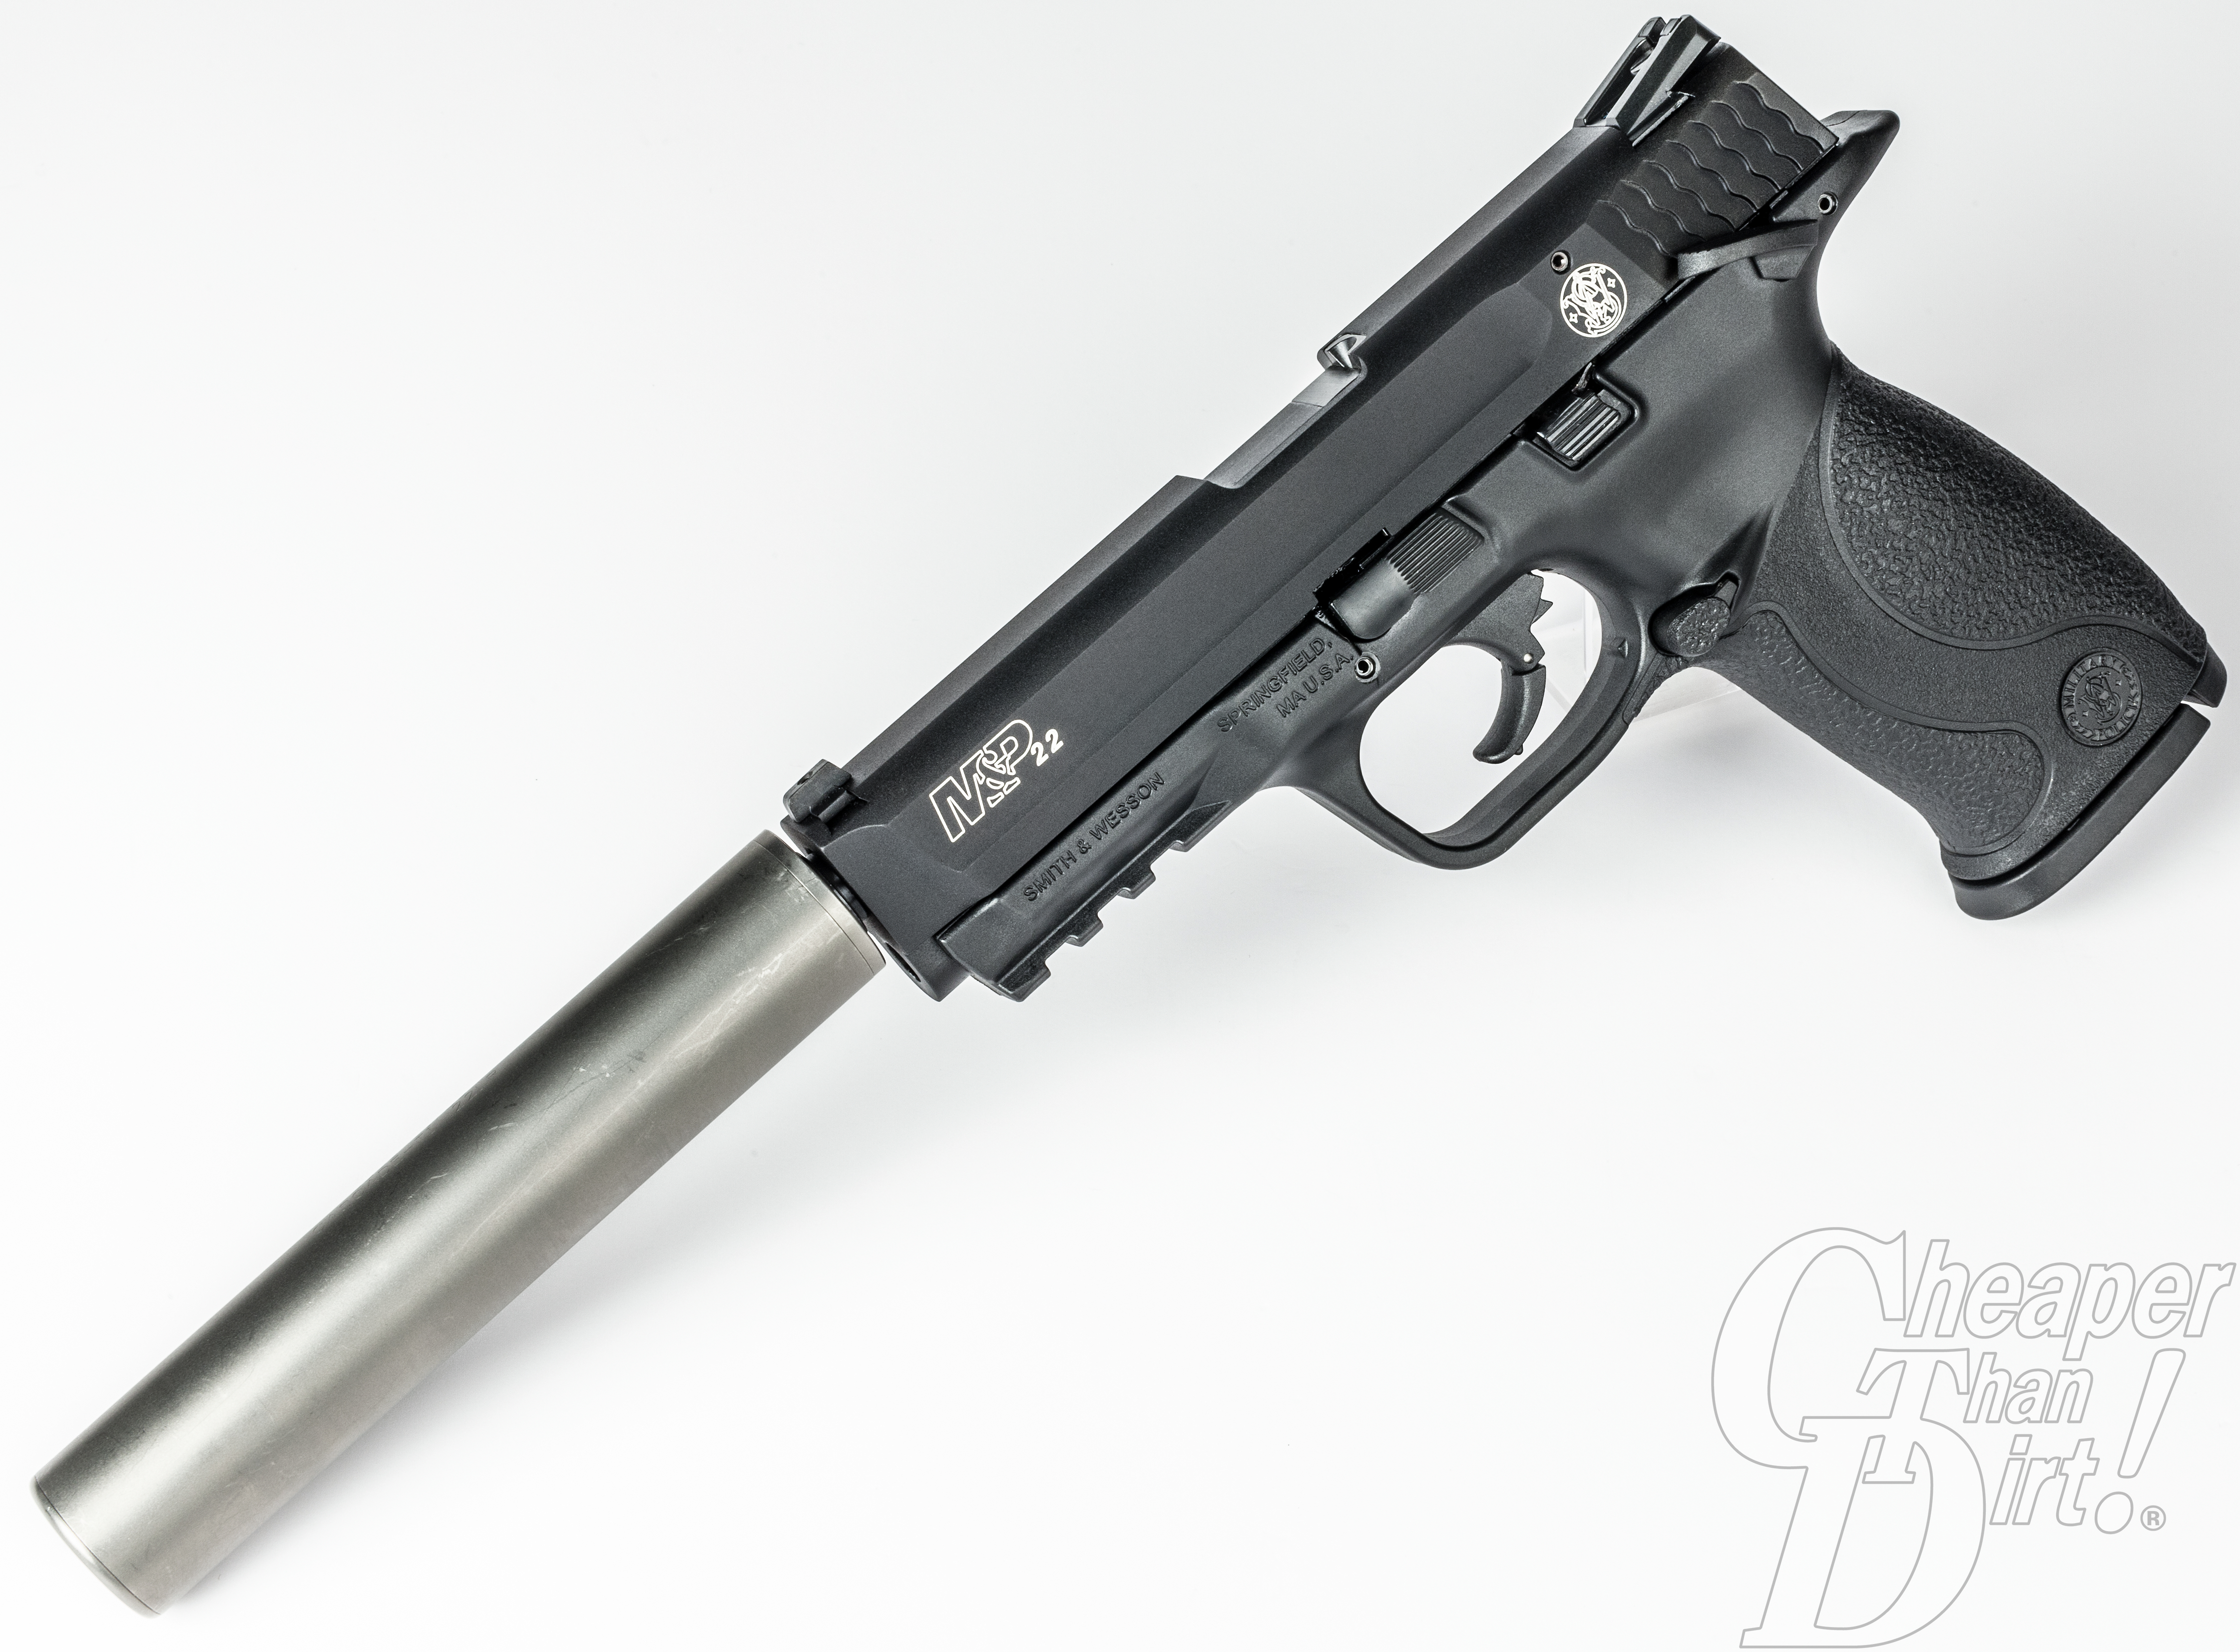 Art of the Gun: Smith & Wesson M&P 22, Suppressed